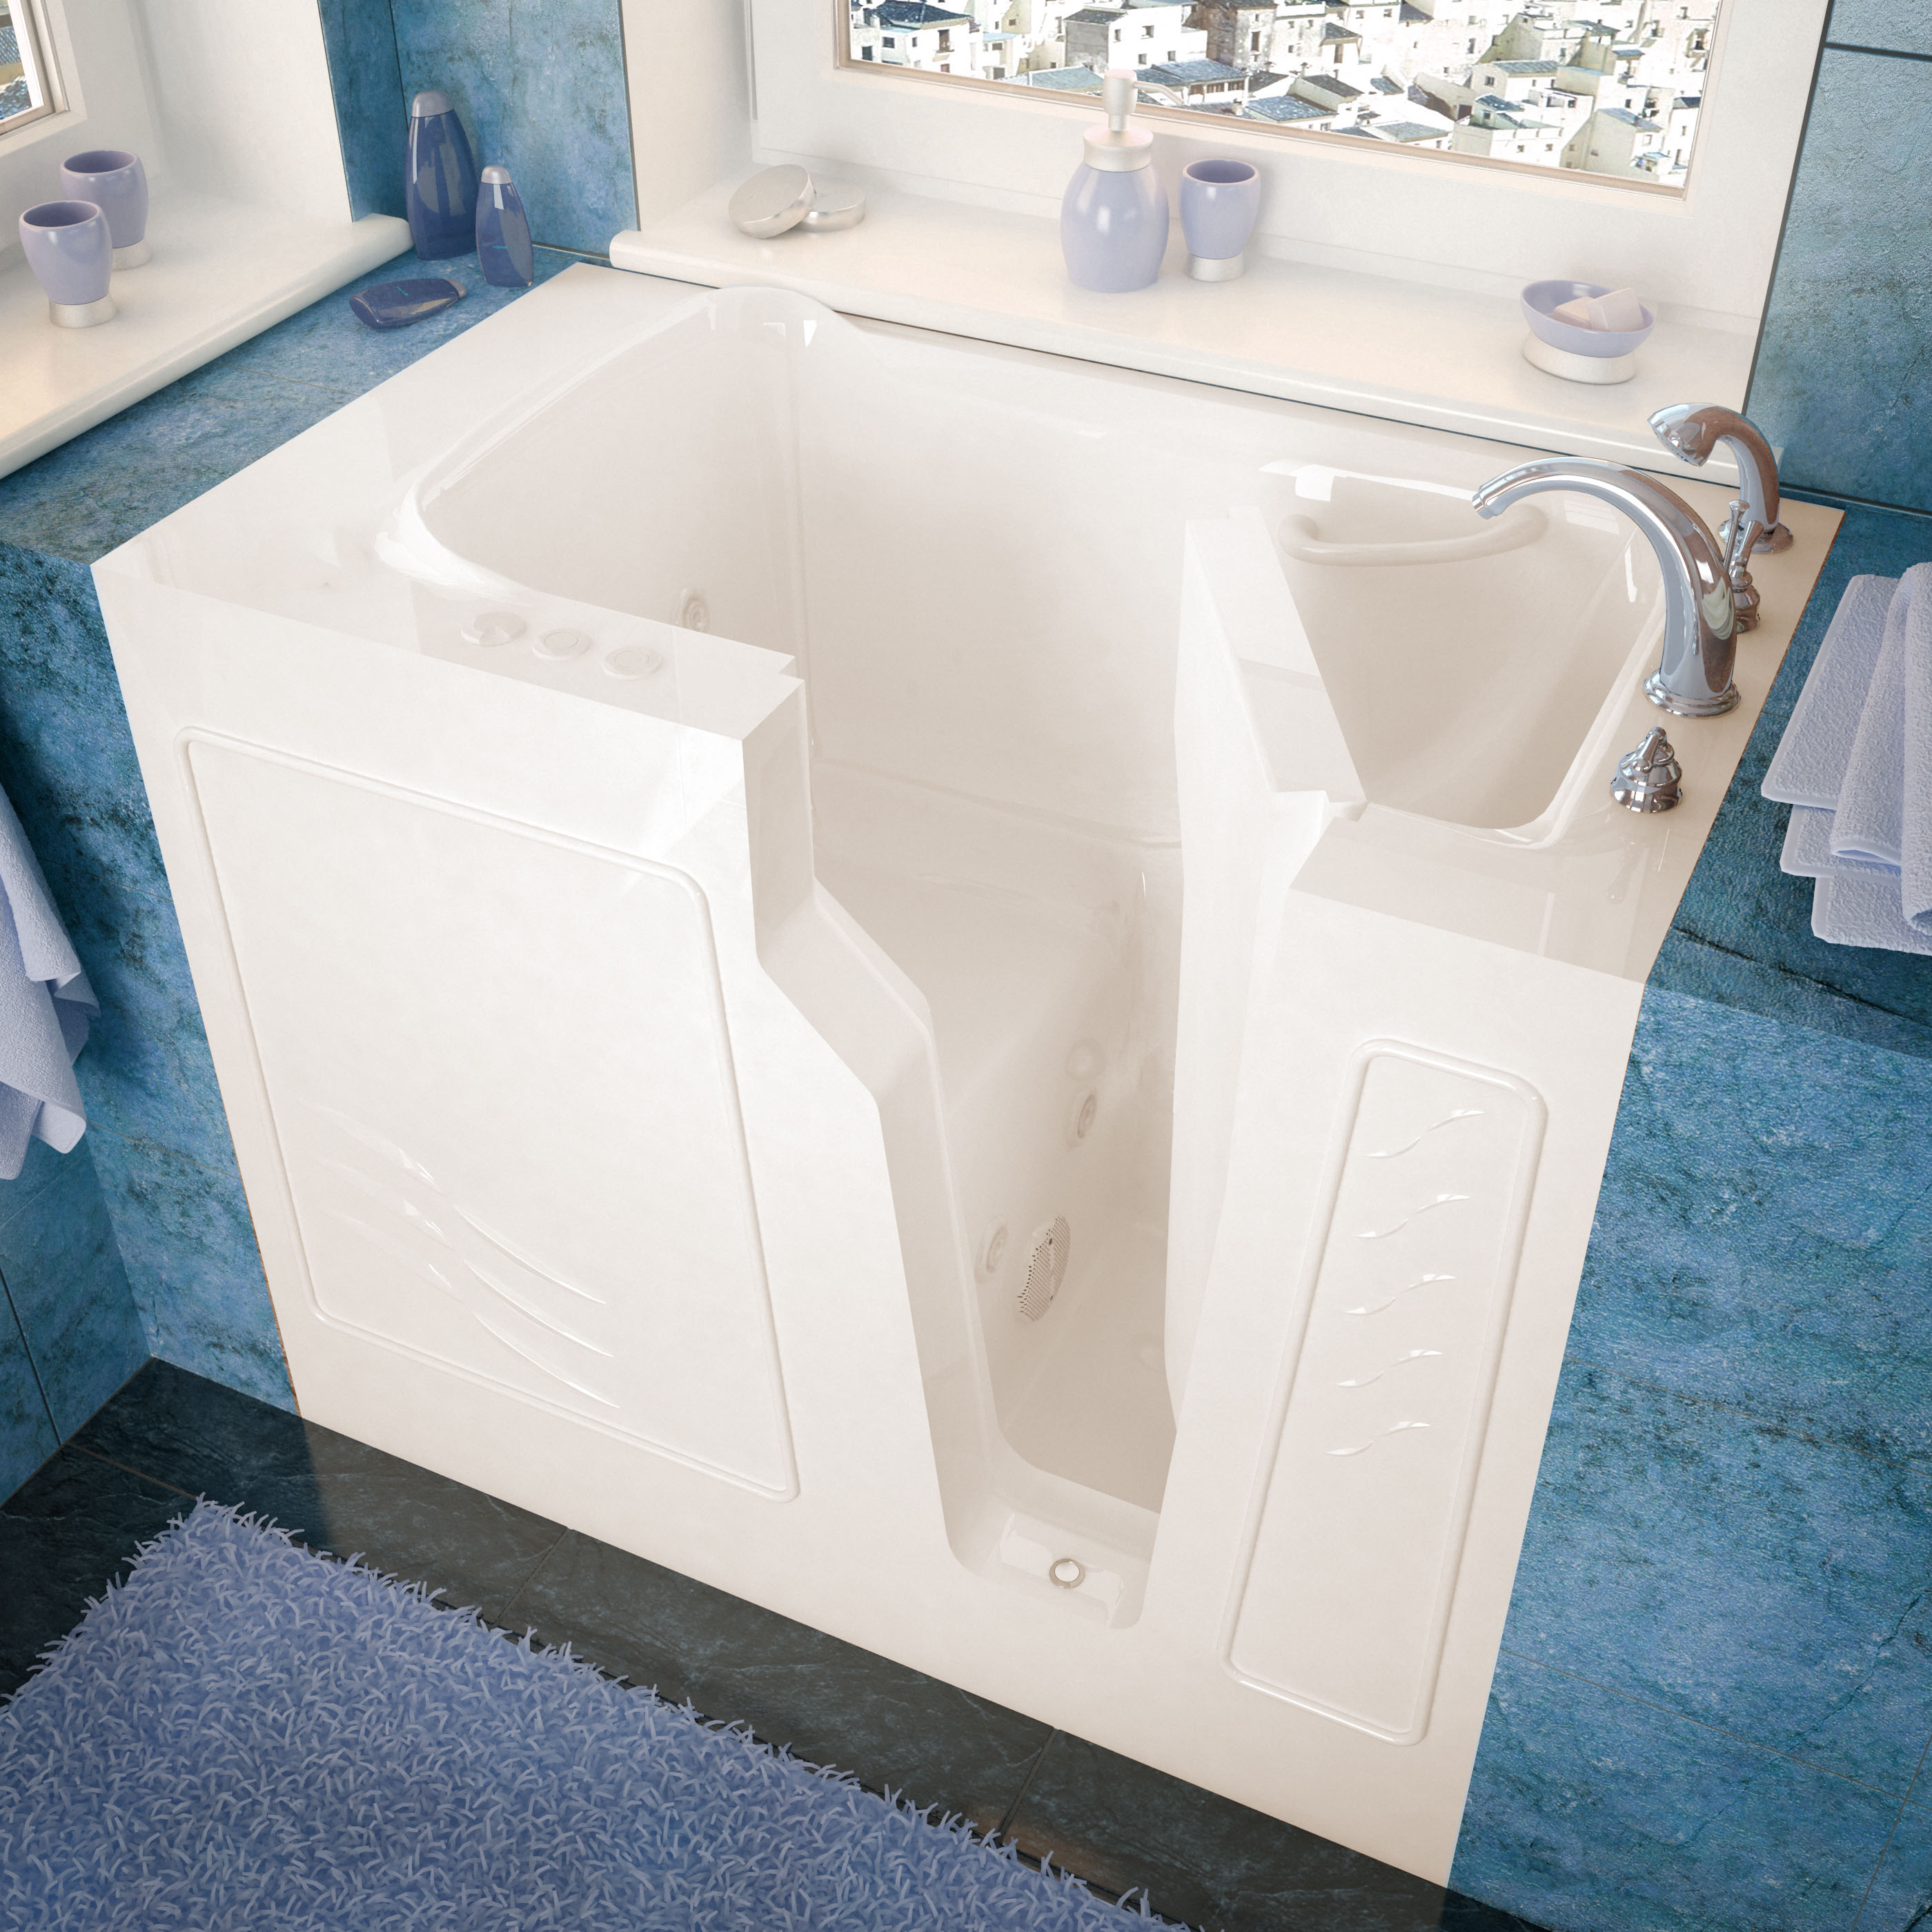 26x46 Right Drain Biscuit Whirlpool jetted Walk-In Bathtub